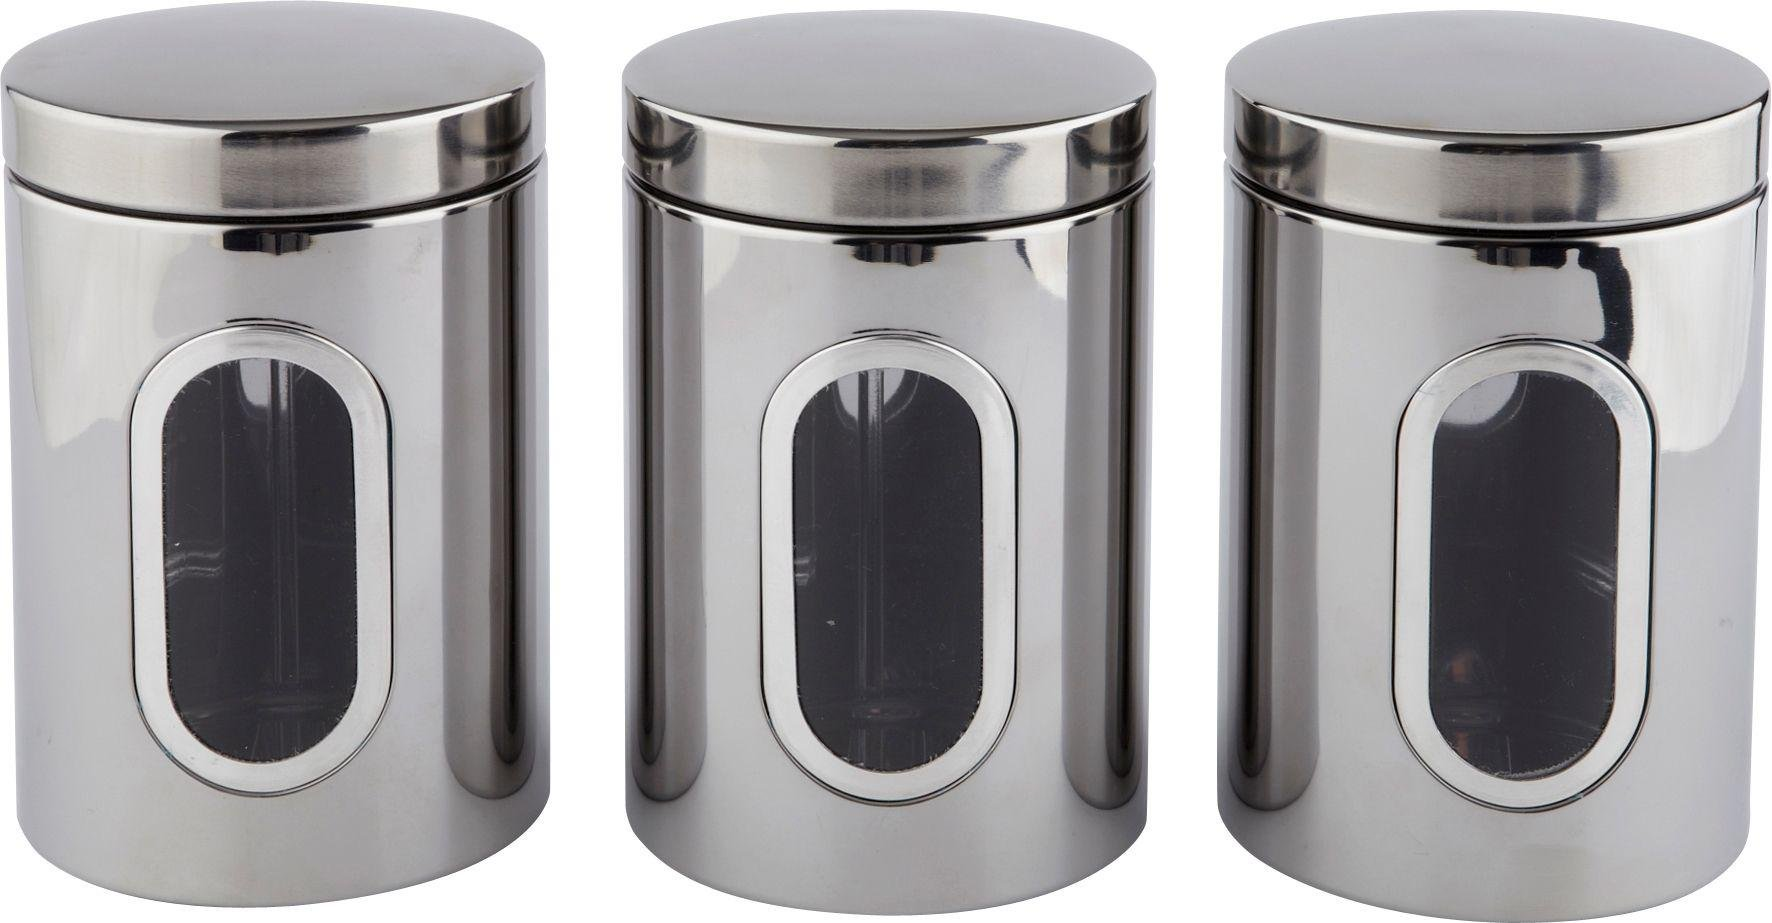 Image of HOME - Airtight Stainless Steel Storage Canisters